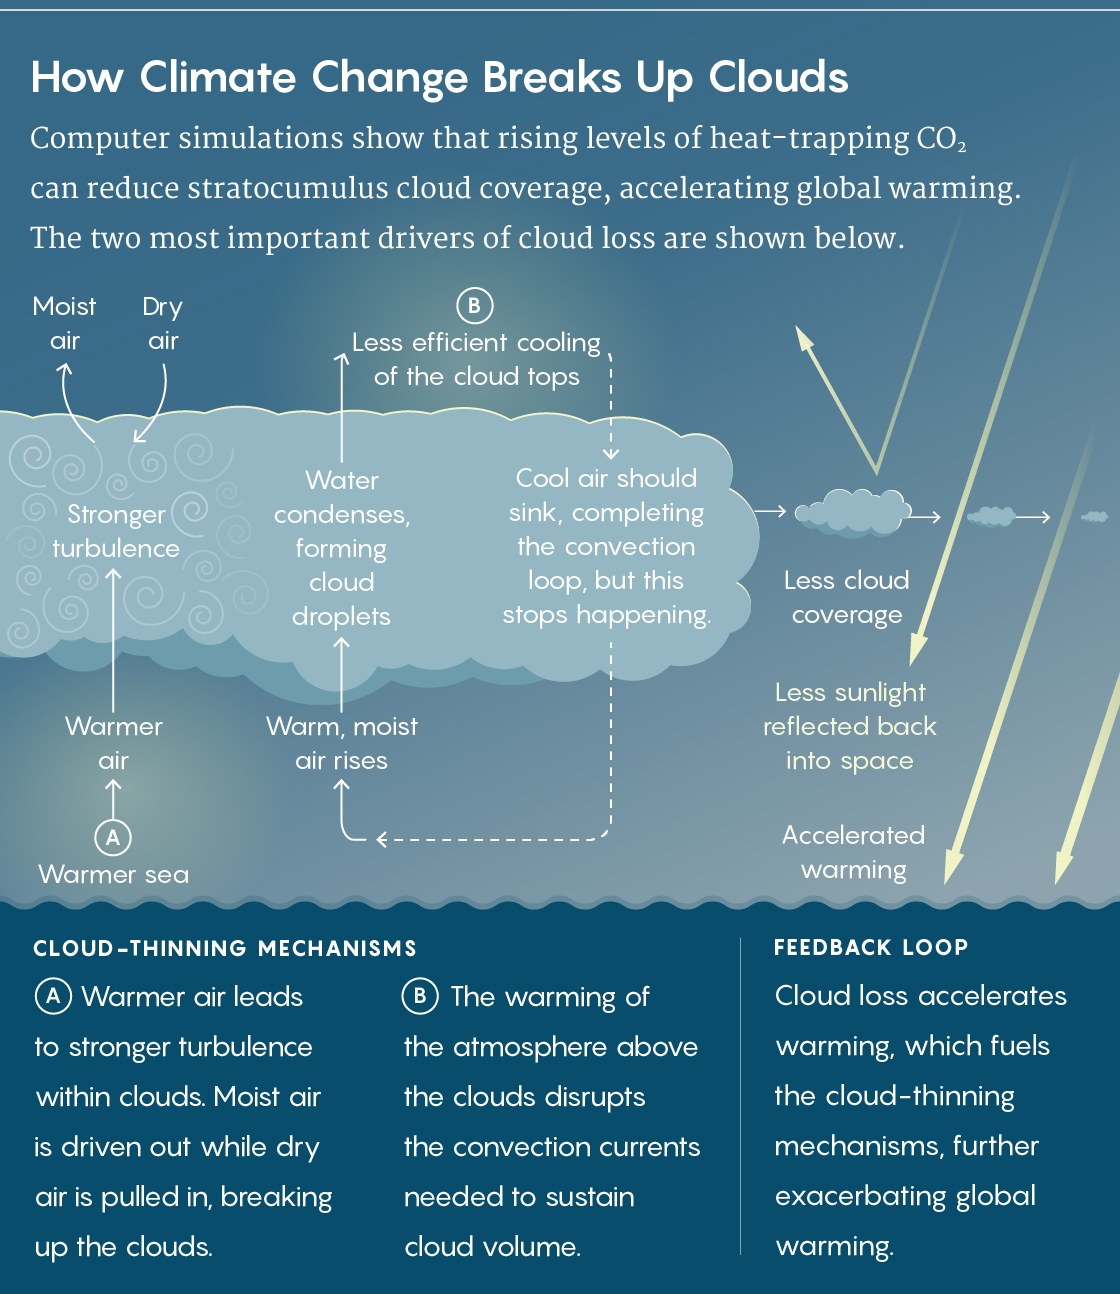 Graphic of cloud-thinning mechanisms